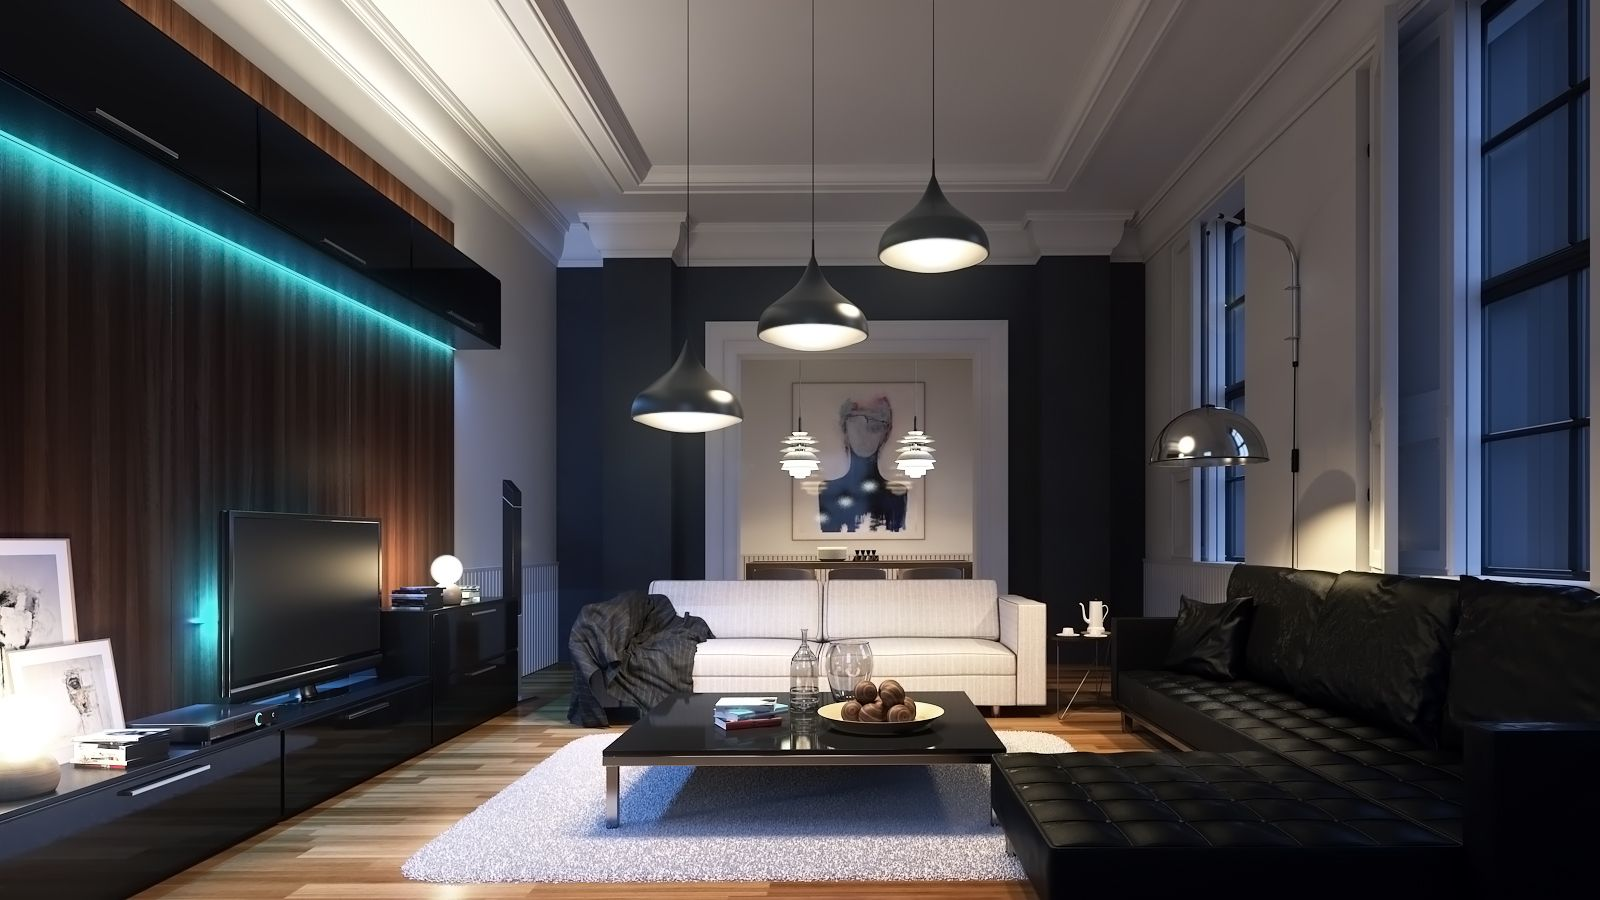 Vray 3ds max night interior making of part 1 vray for 3d max interior design